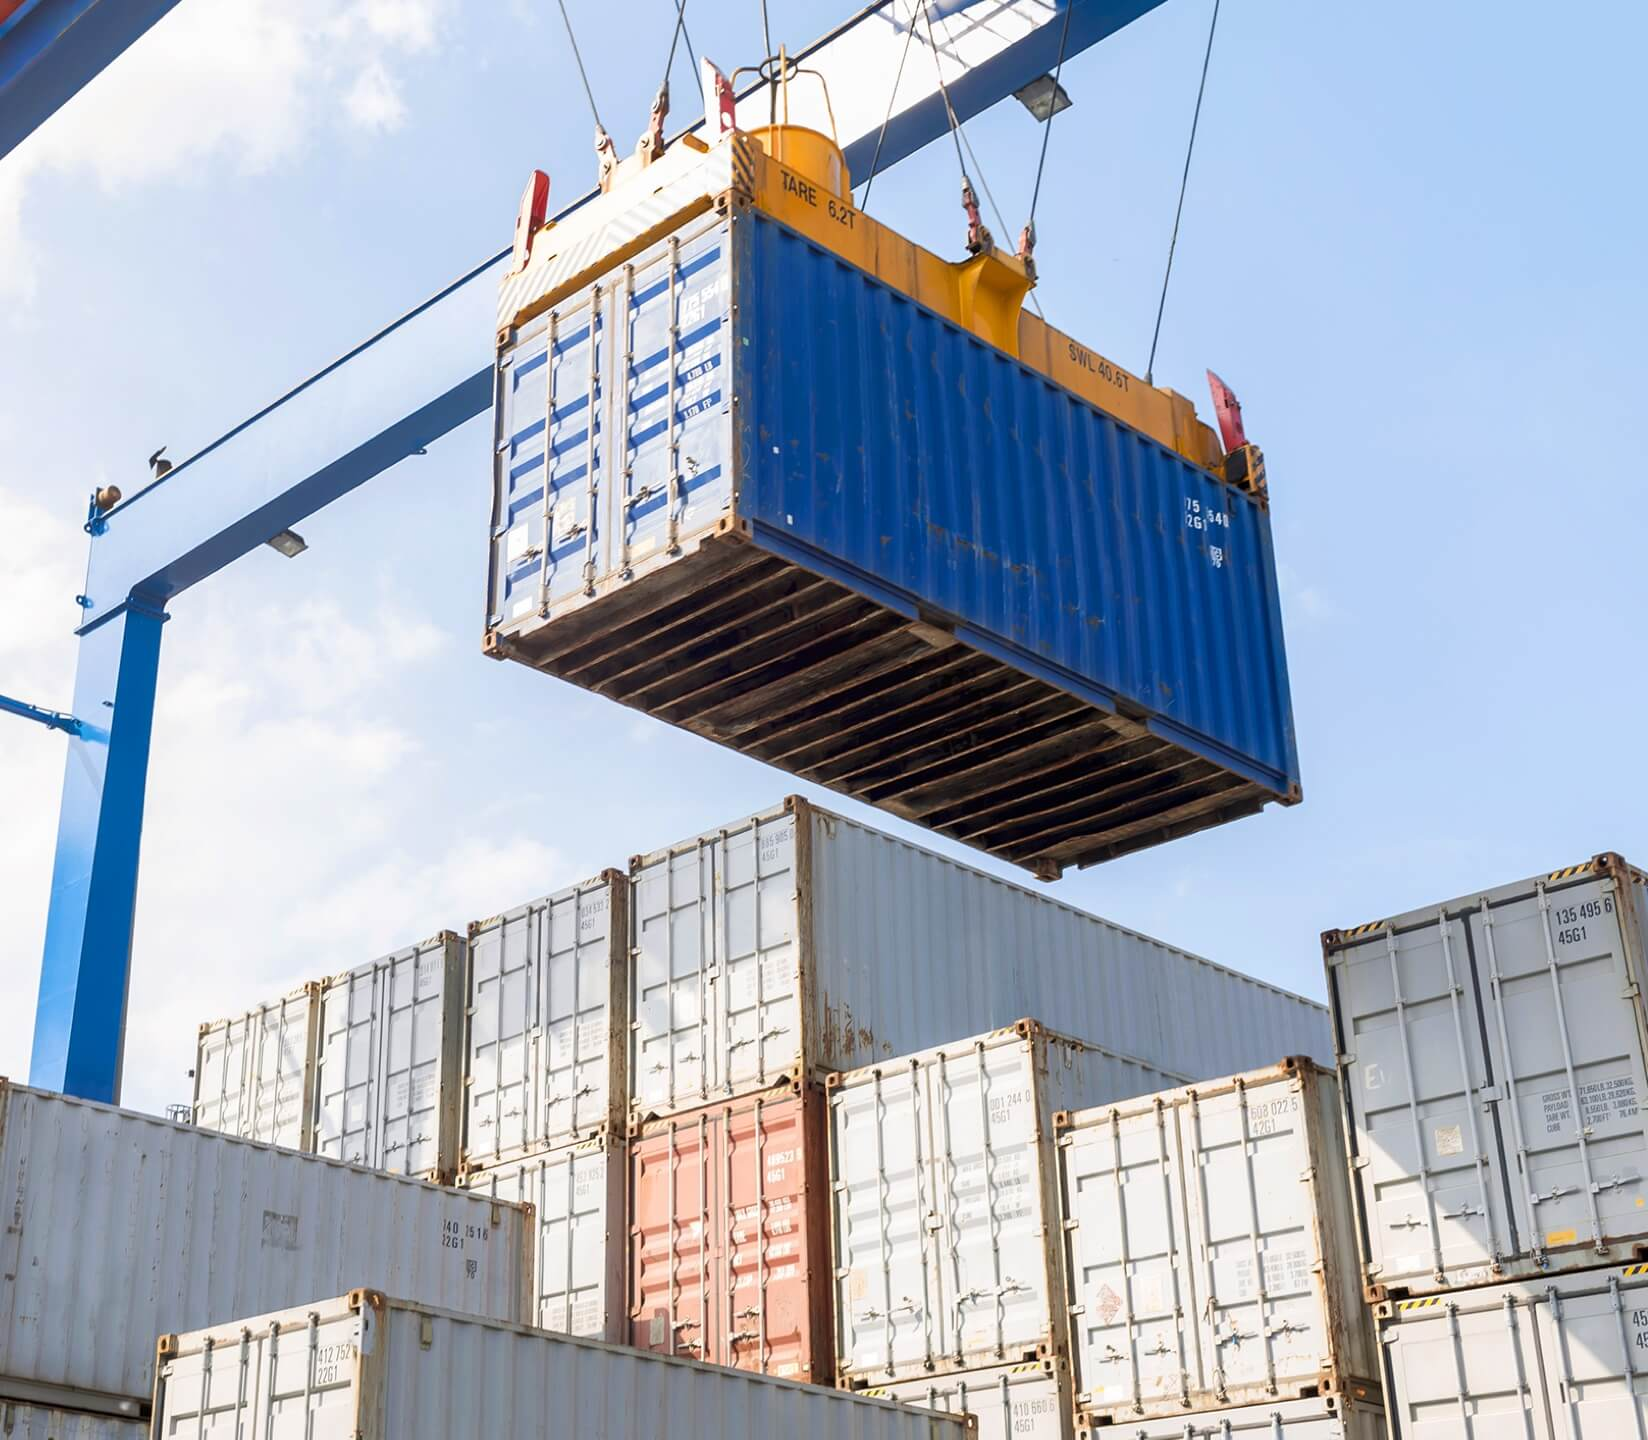 Looking For A Freight Forwarder Fba?